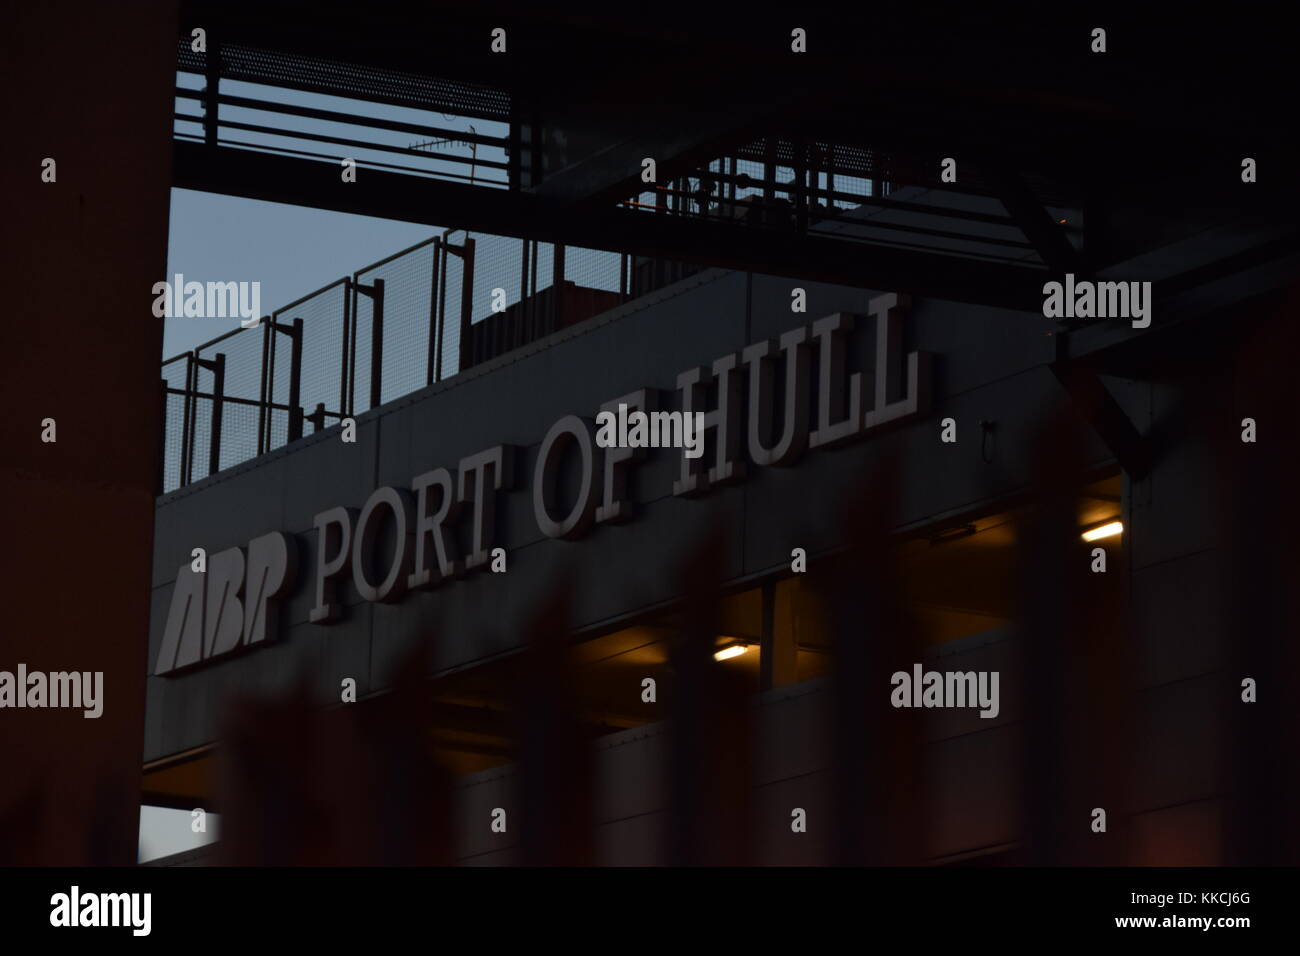 ABP Port of Hull sign on P&O Ferries terminal building, Kingston upon Hull, East Yorkshire, UK - Stock Image